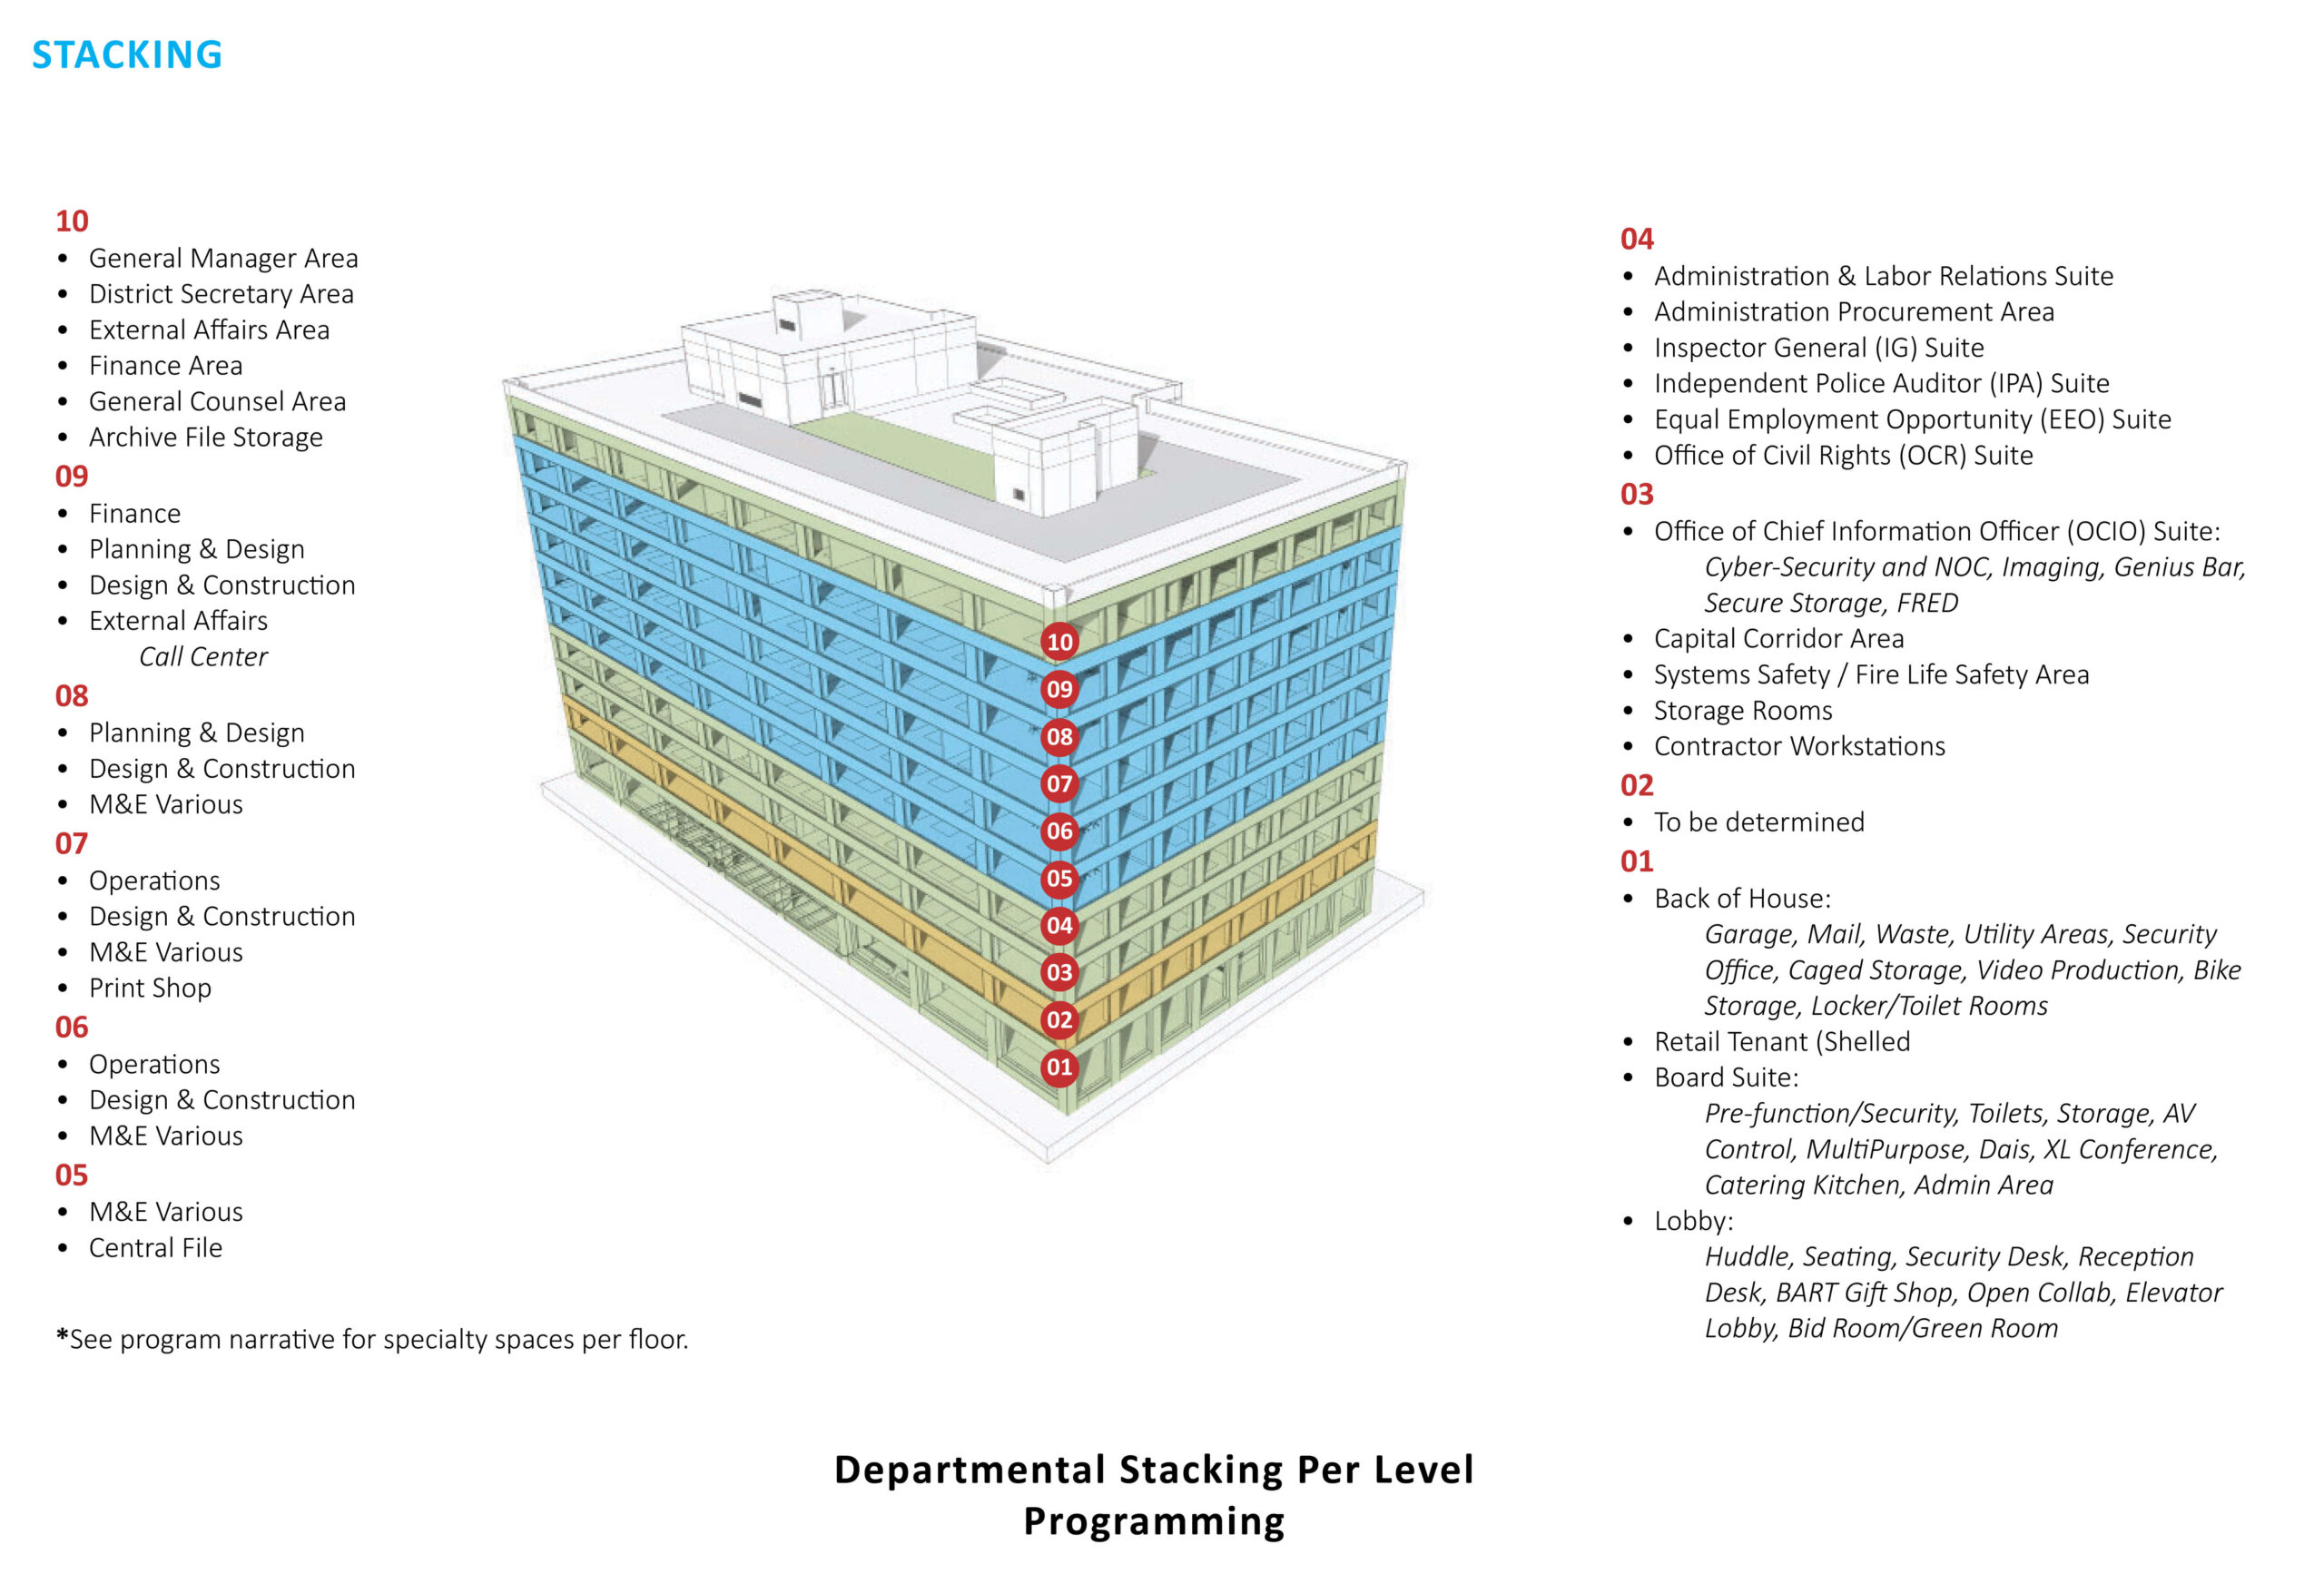 RIM Architect's stacking diagram for BART's new headquarters in Oakland, California